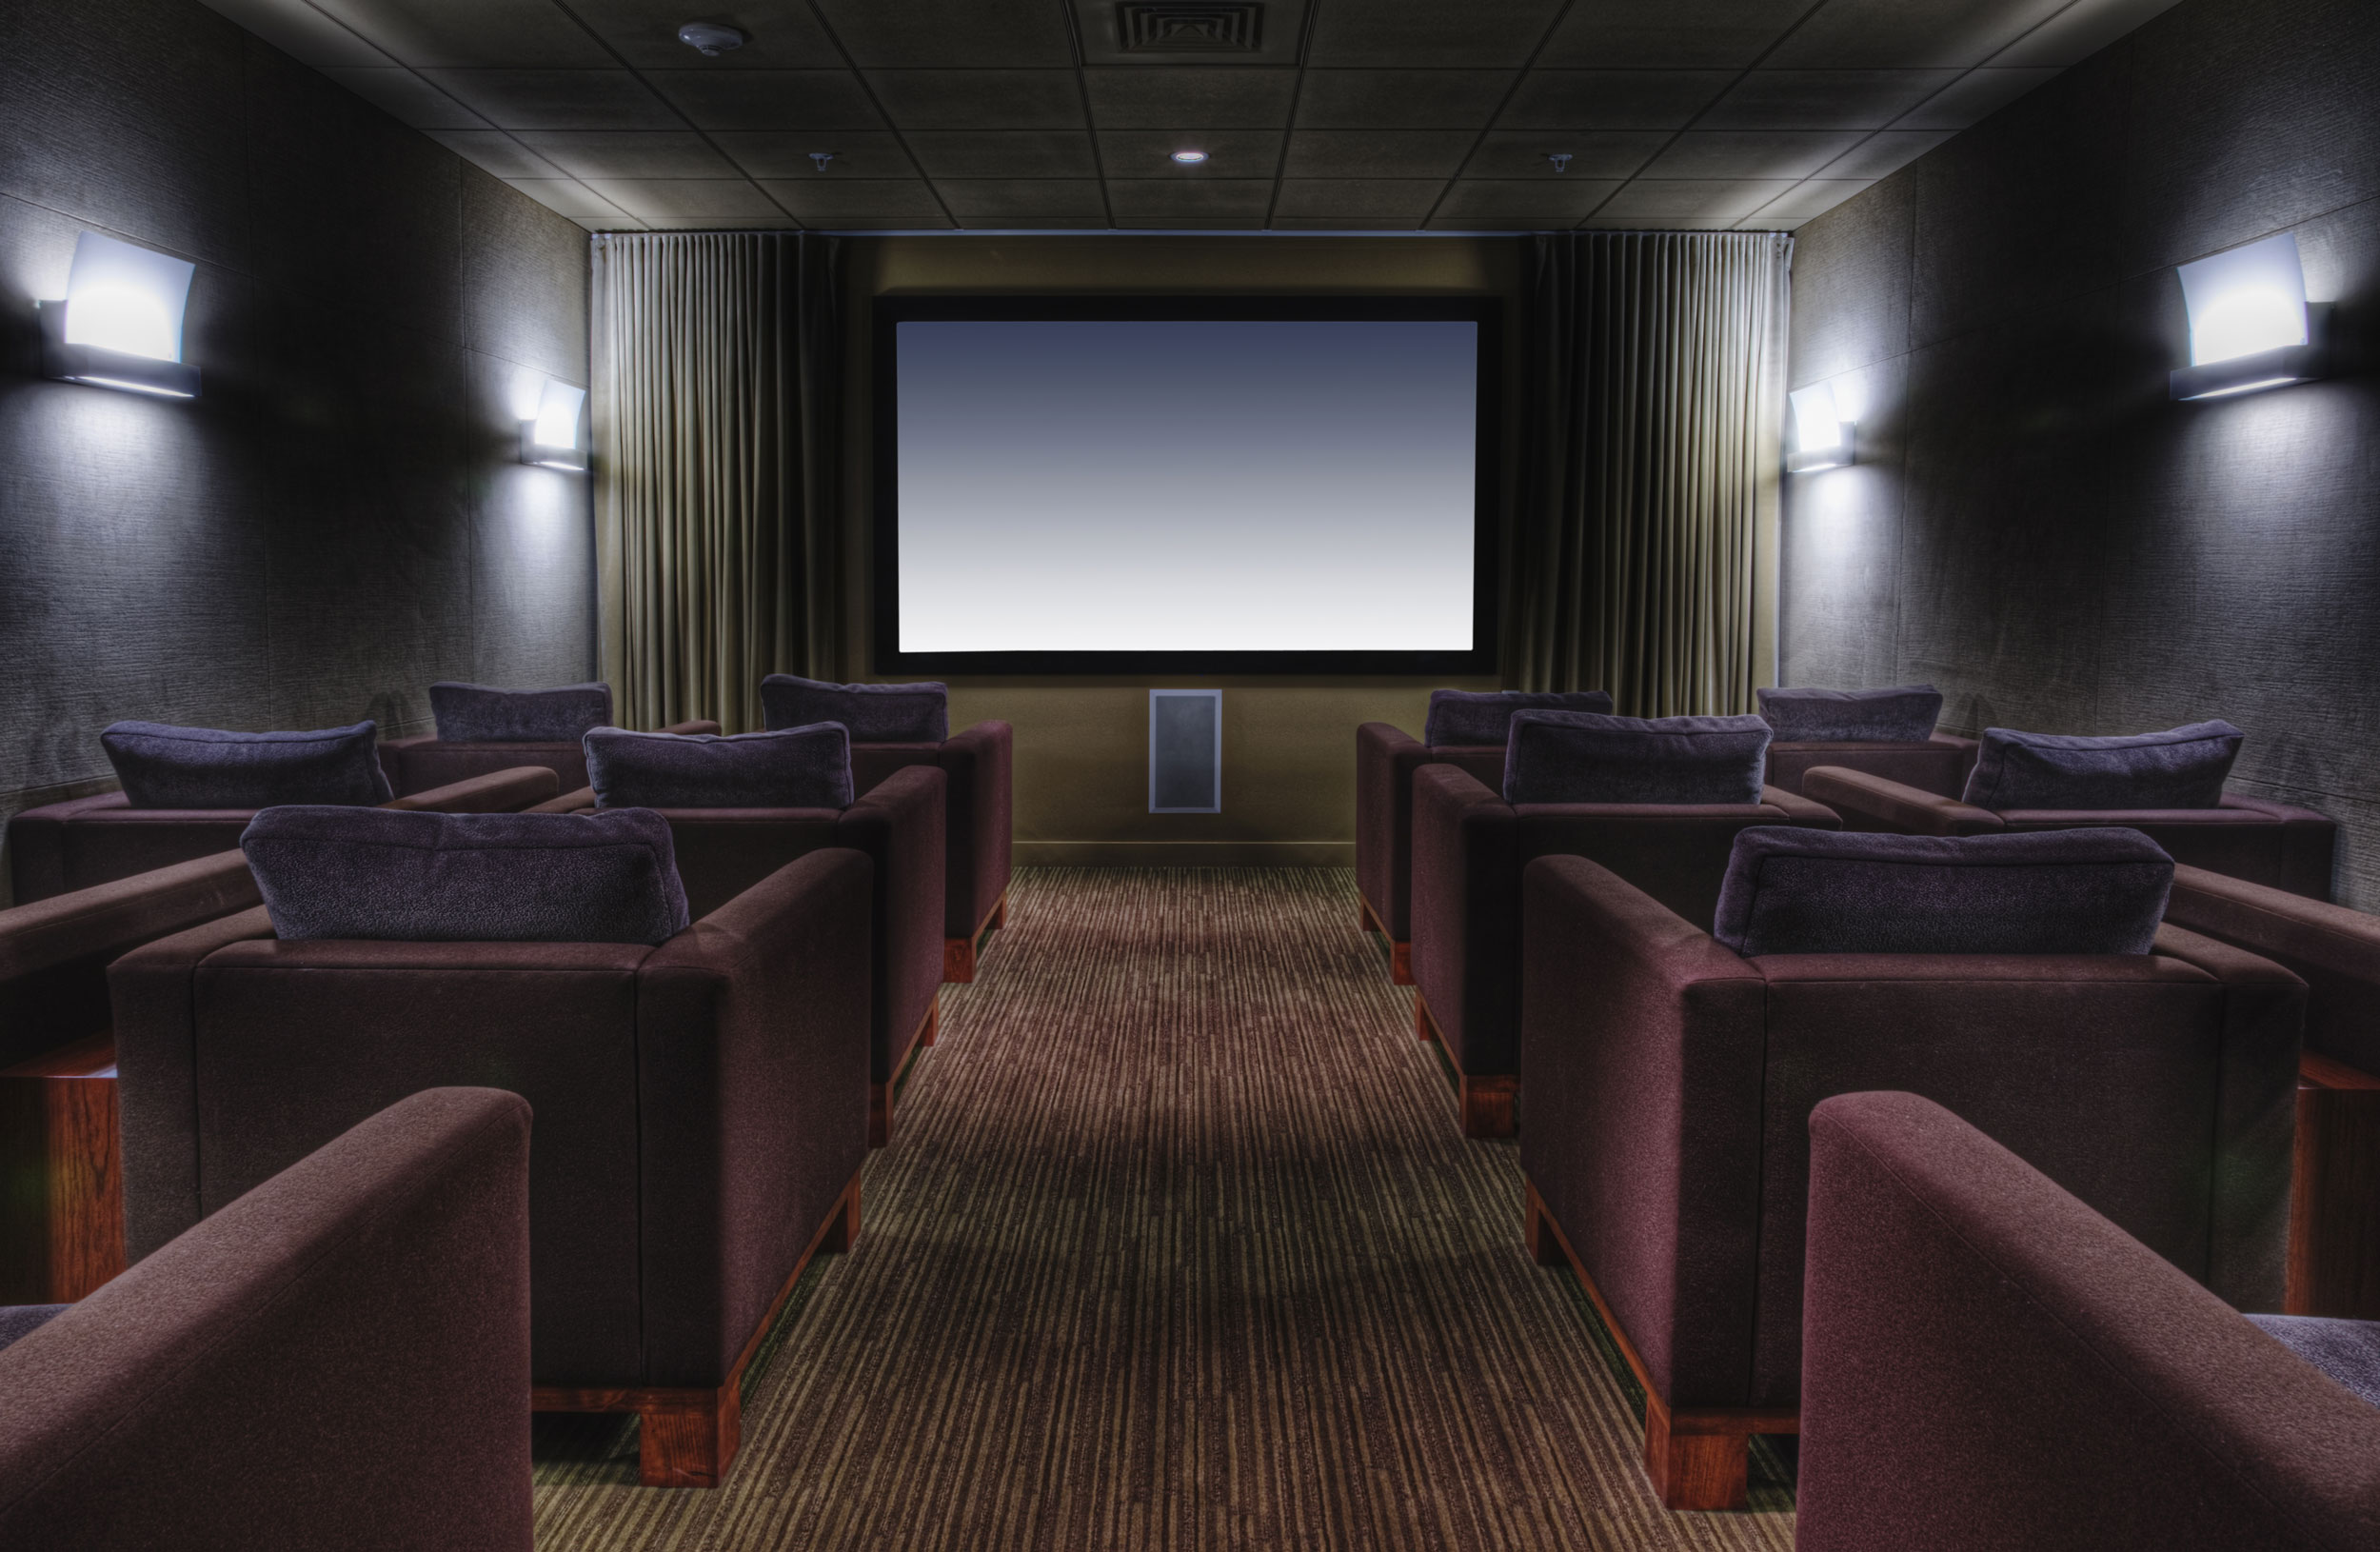 Media Room & Home Theatre Seating Ideas